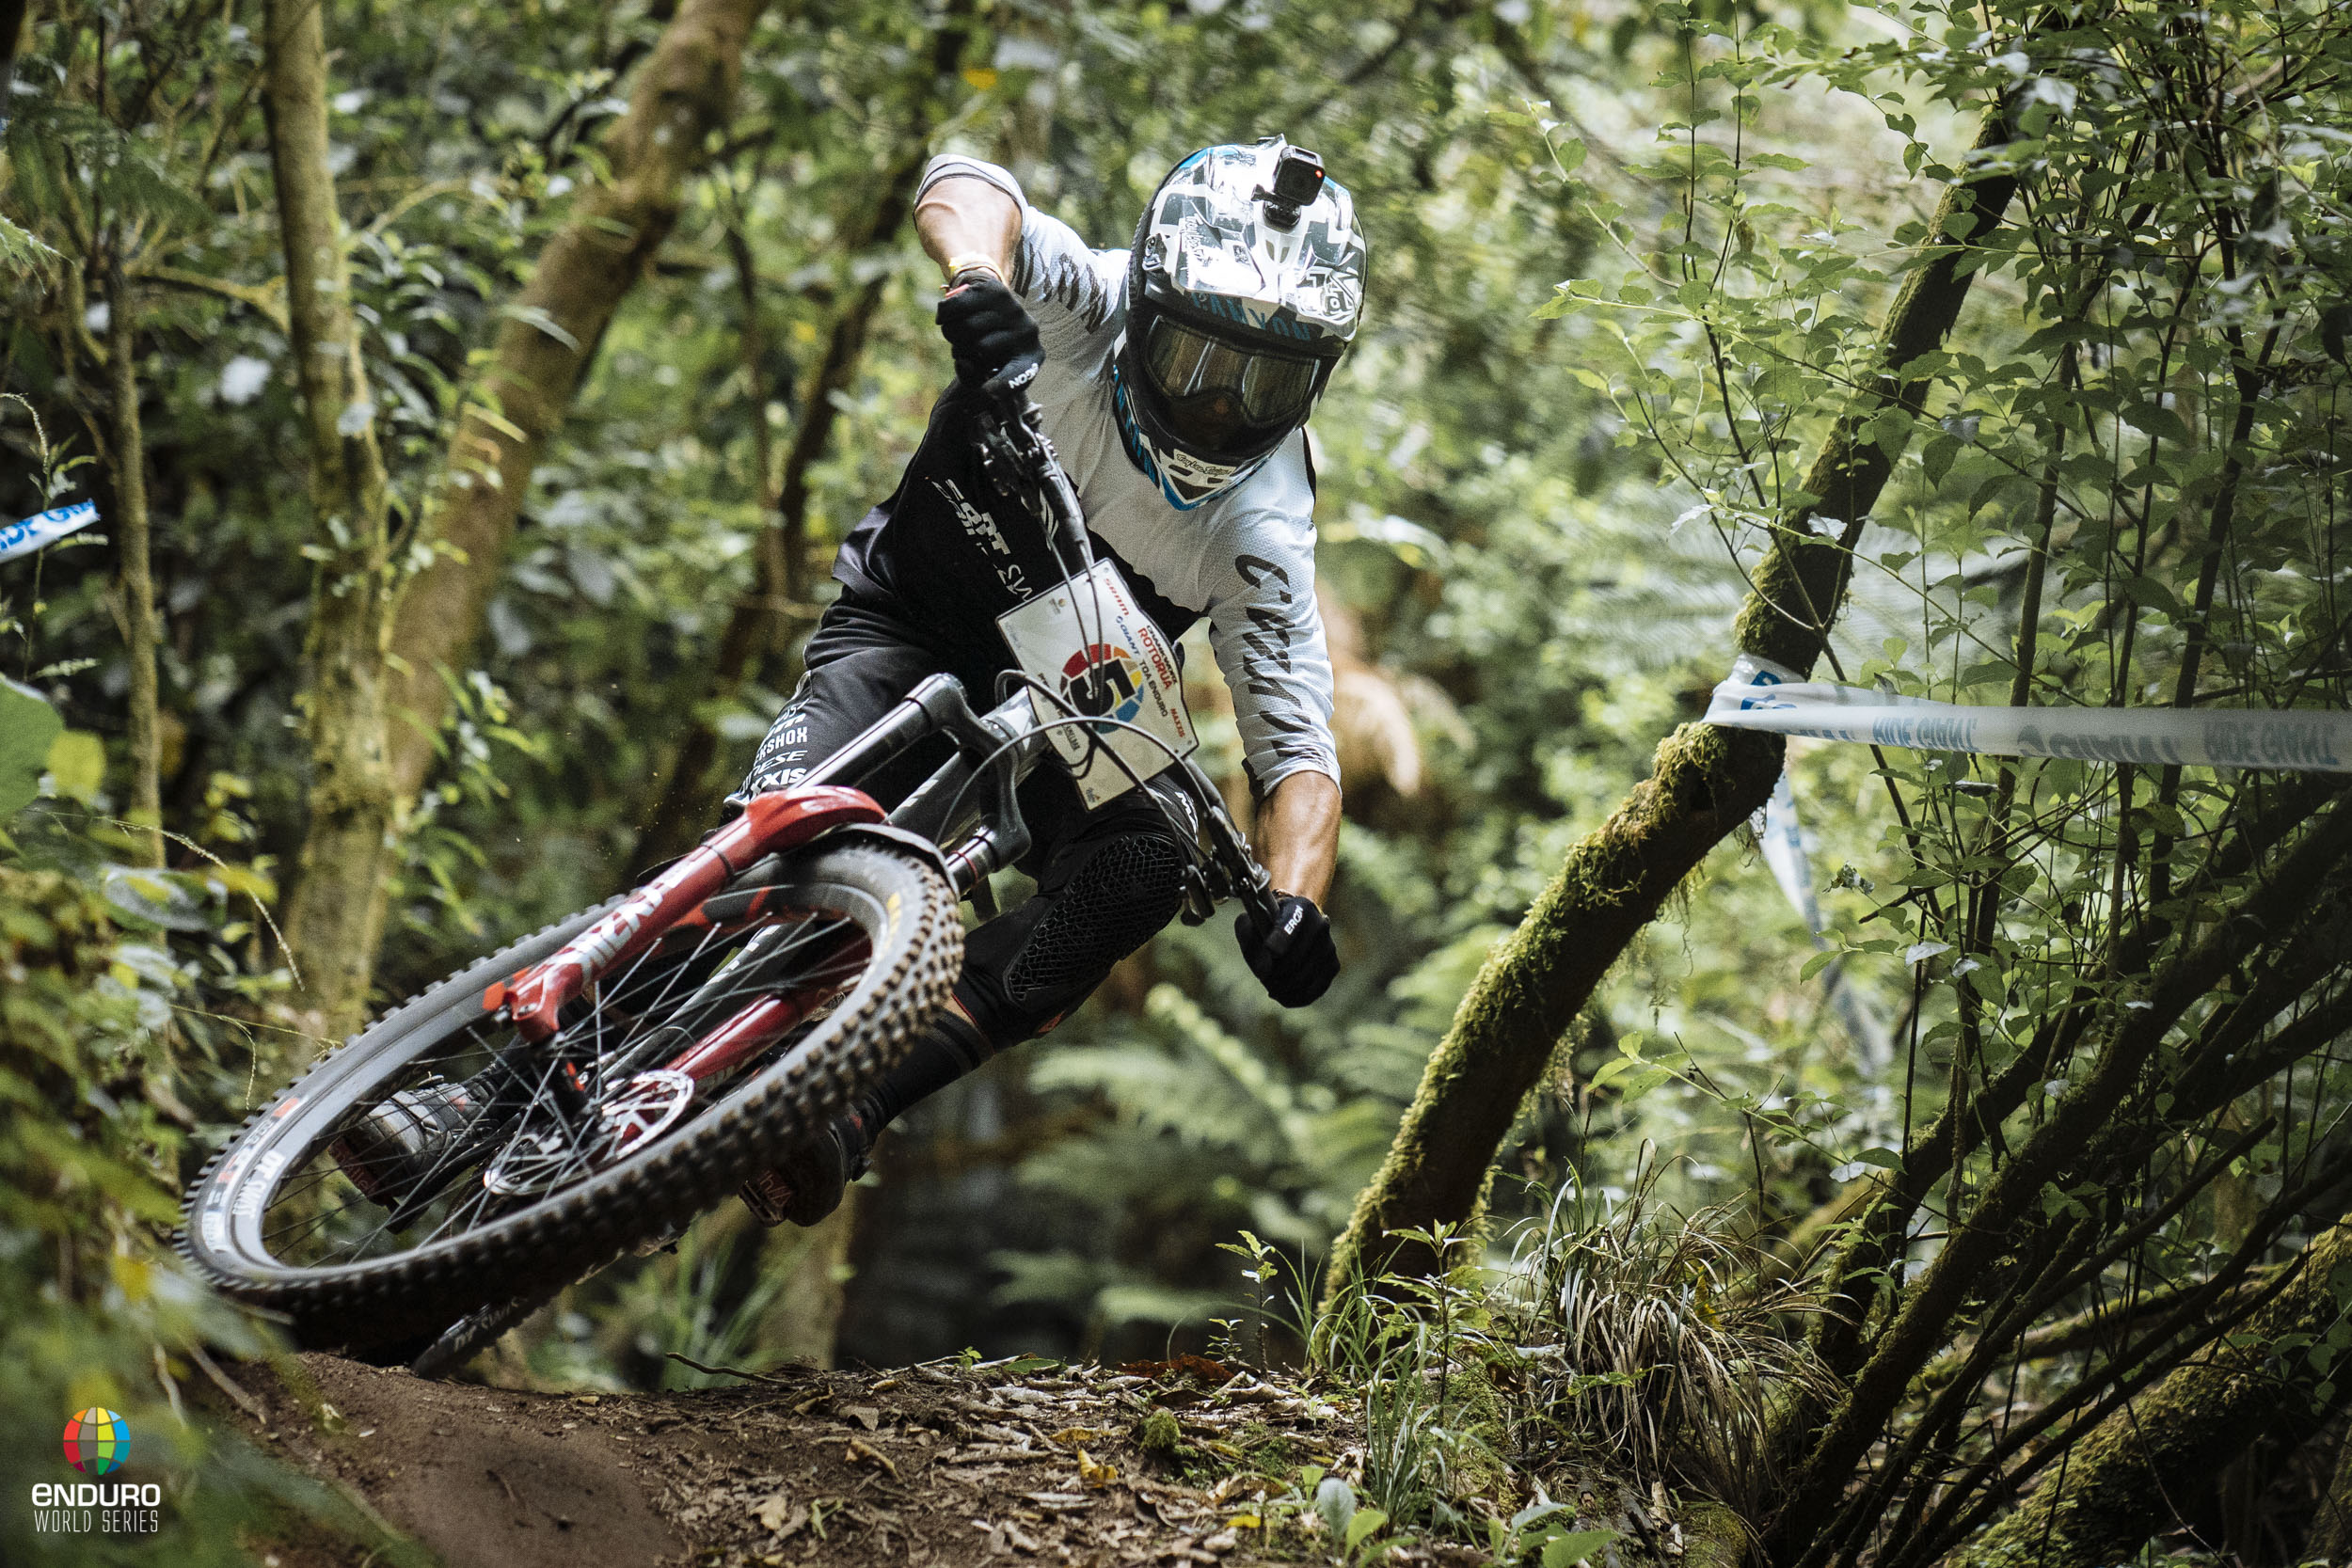 Dimitri Tordo has been riding incredibly confidently in practice.